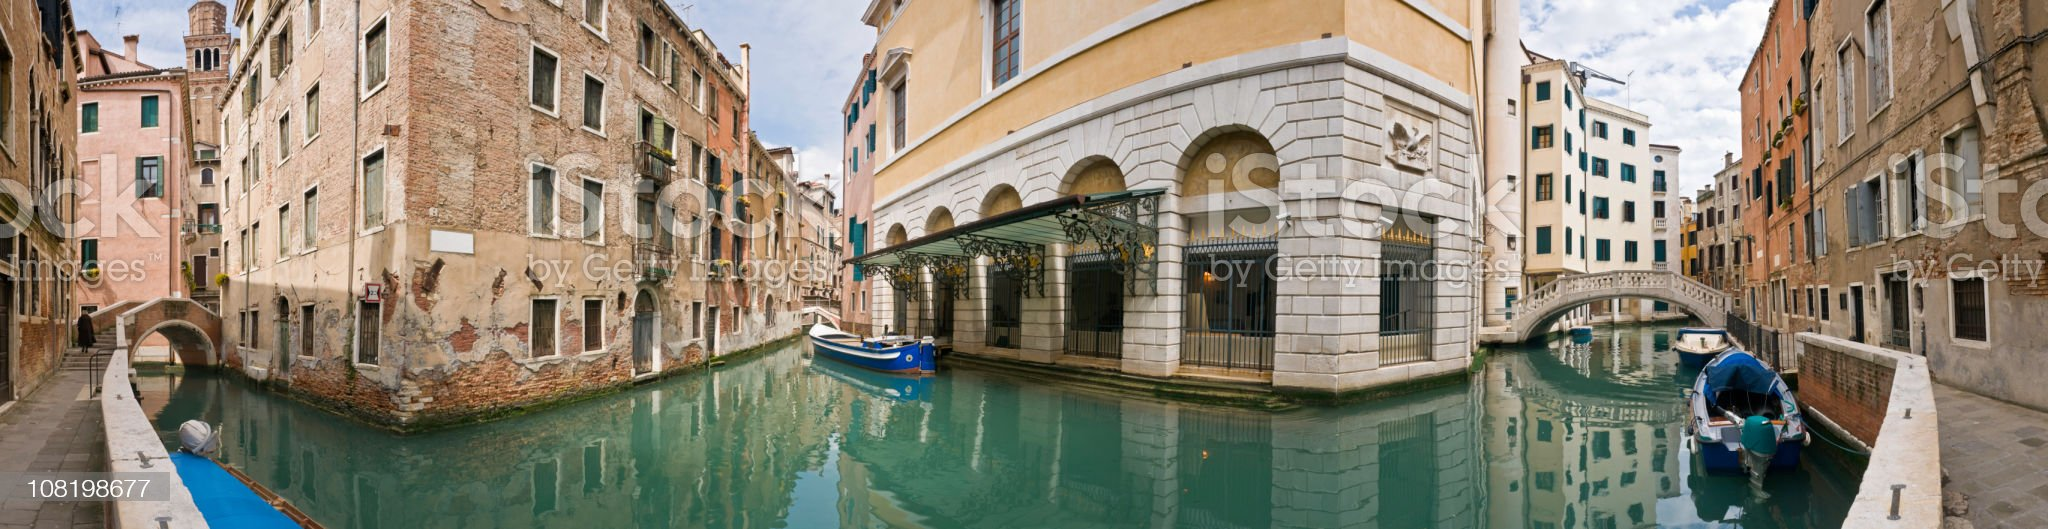 Canals and Villas of Venice royalty-free stock photo